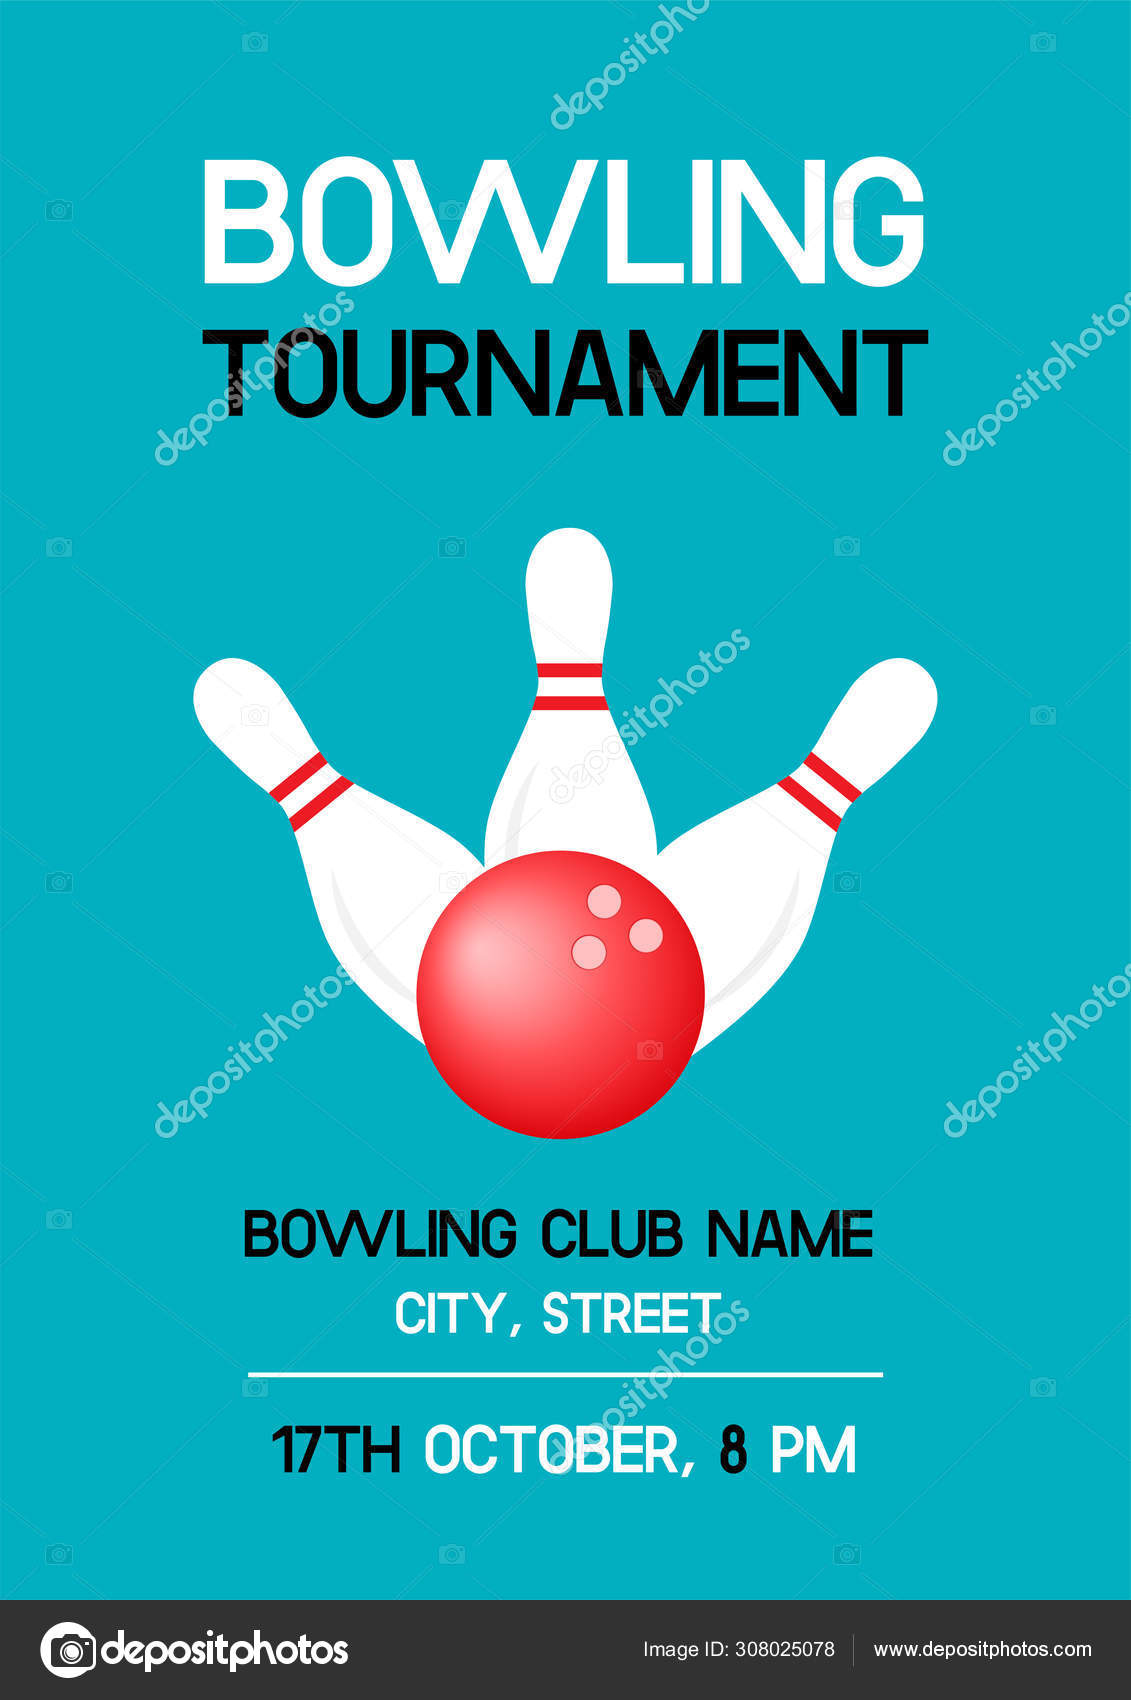 Bowling Tournament Poster Sample Text Bowling Clubs